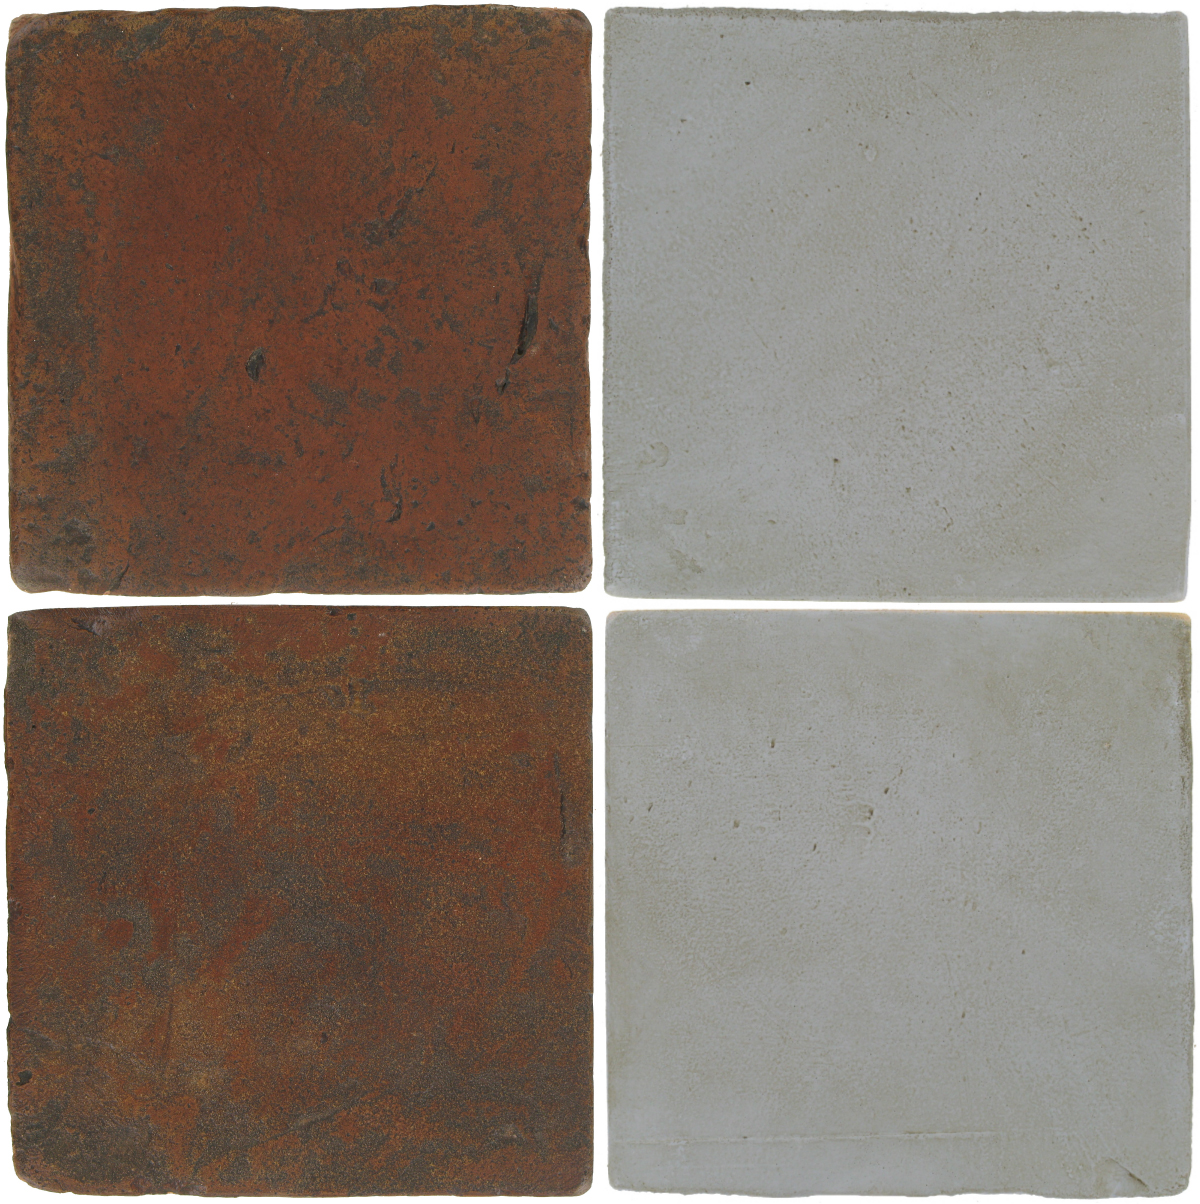 Pedralbes Antique Terracotta  2 Color Combinations  VTG-PSOW Old World + OHS-PGOG Oyster Grey